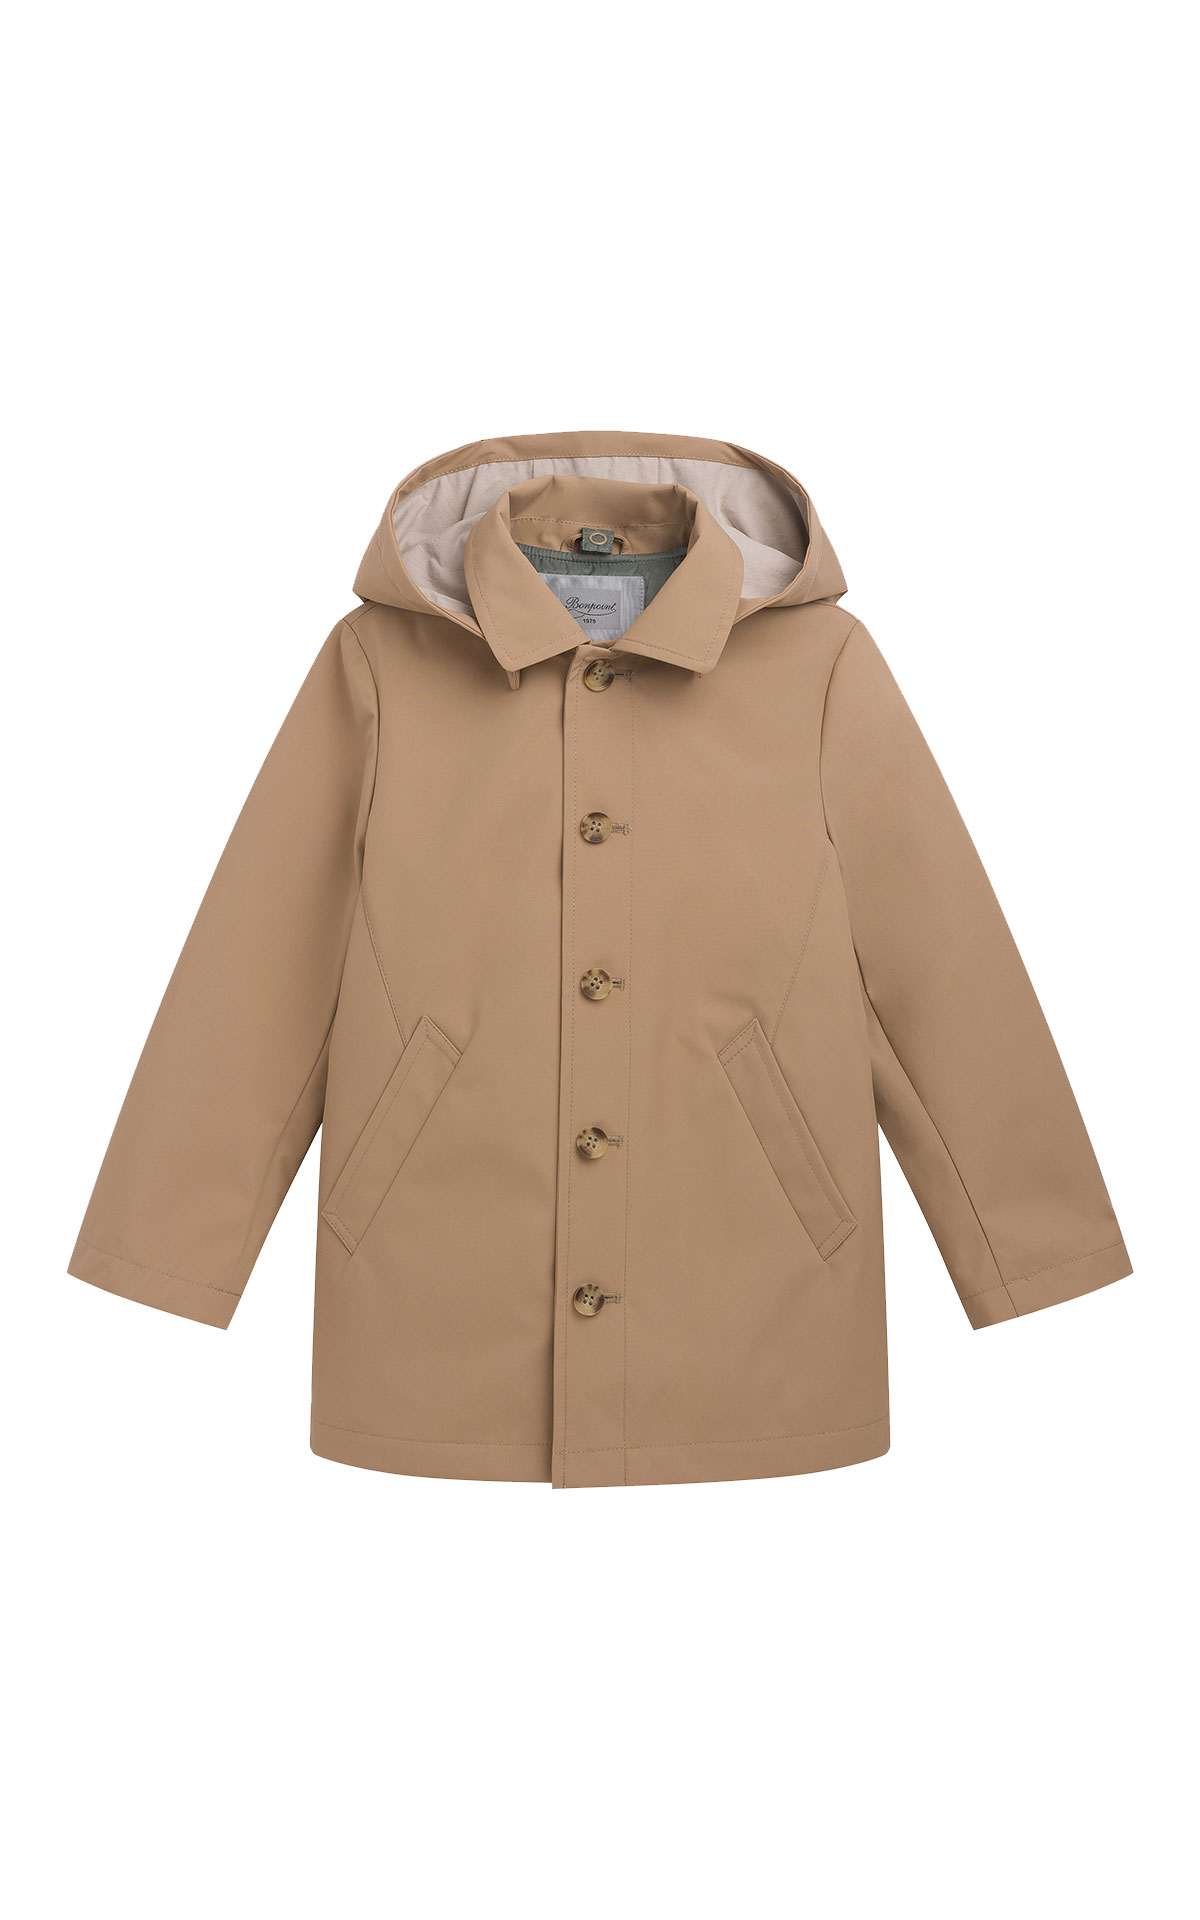 Bonpoint Camel coat from Bicester Village